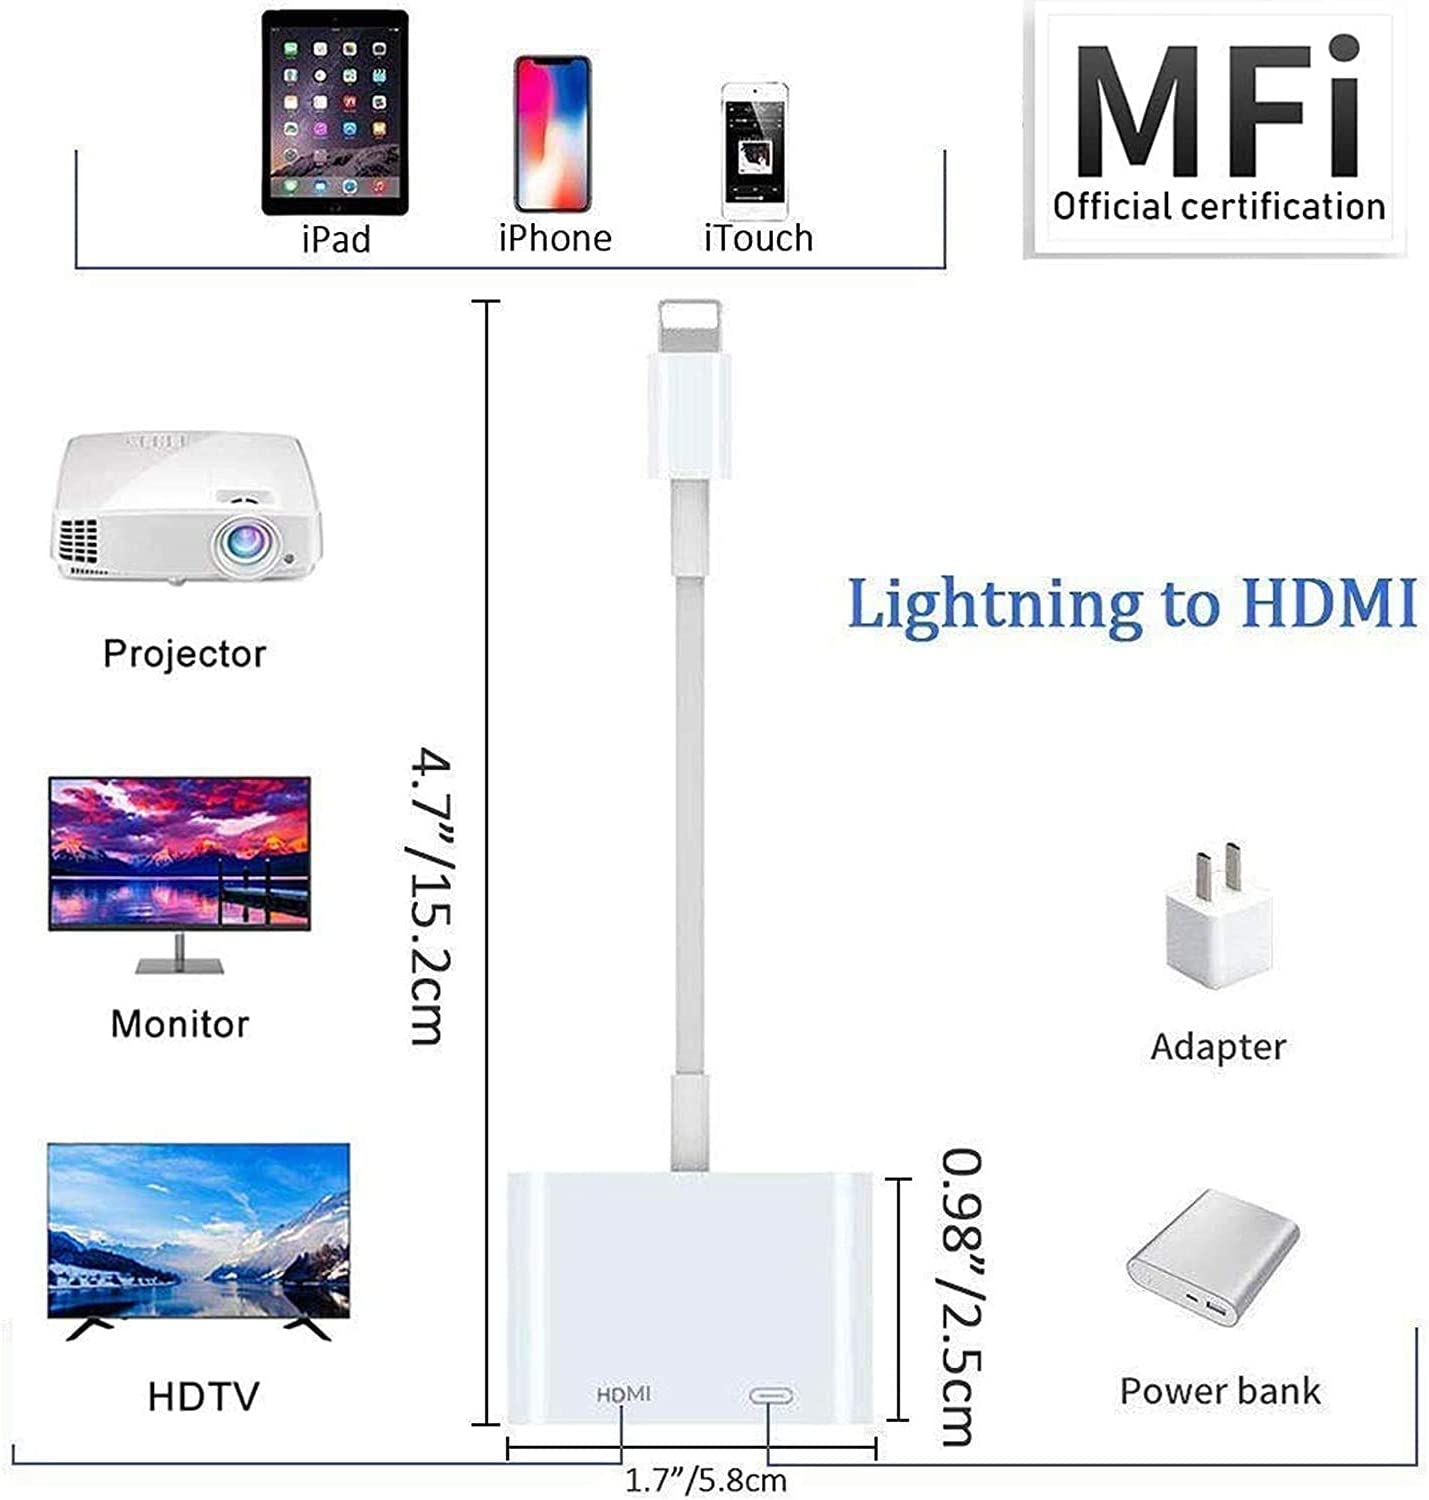 Lighting Digital AV Adapter 1080p HD TV Connector Cable Compatible with iPhone Xs Max XR X 8 7 iPad to TV Projector Monitor Lighting to HDMI Adapter Compatible with iPhone iPad